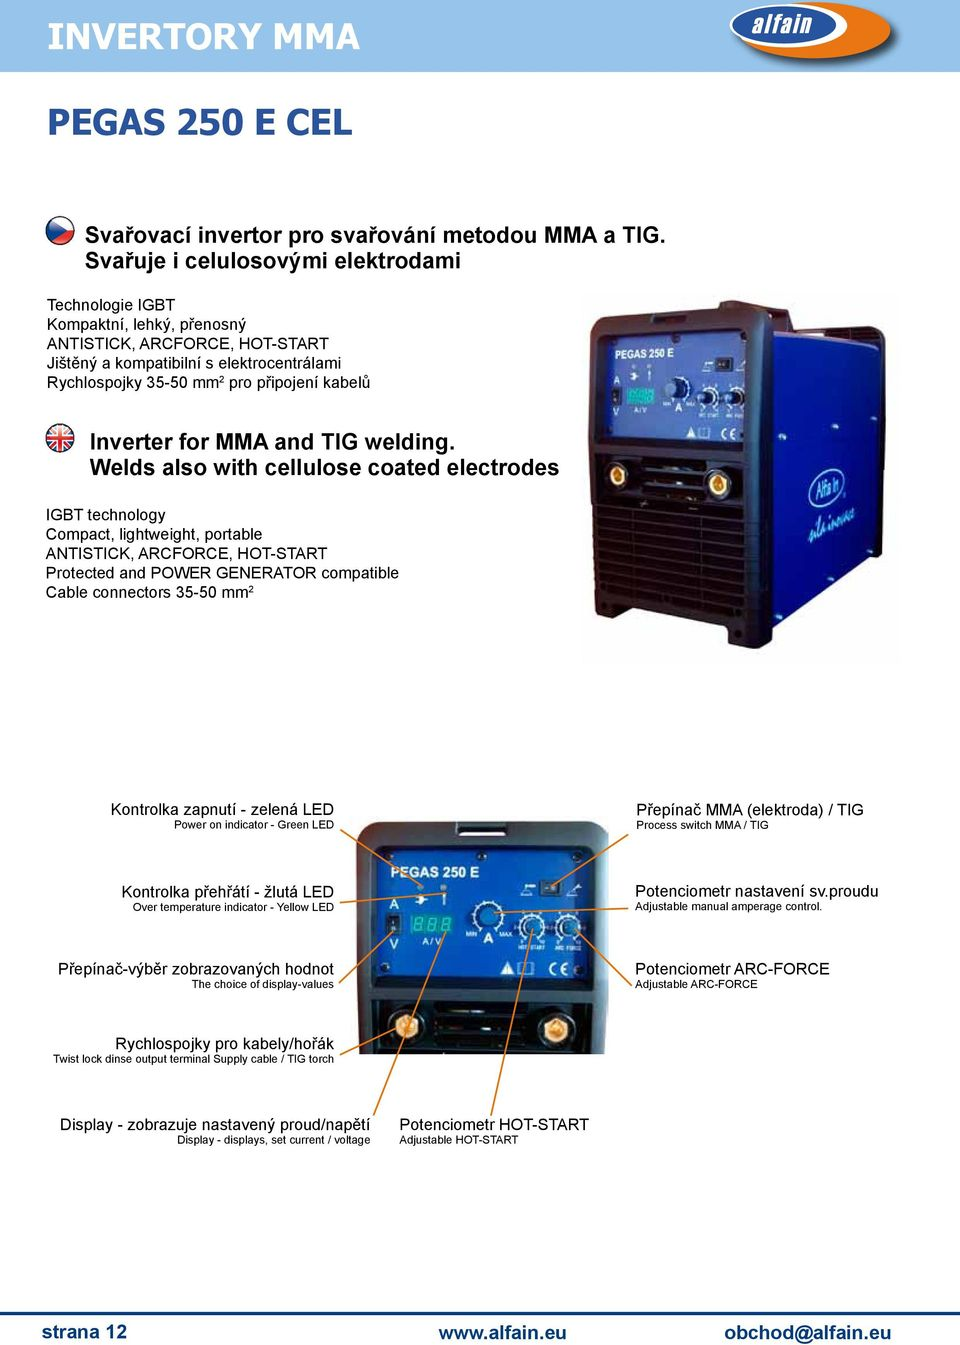 Inverter for MMA and TIG welding.